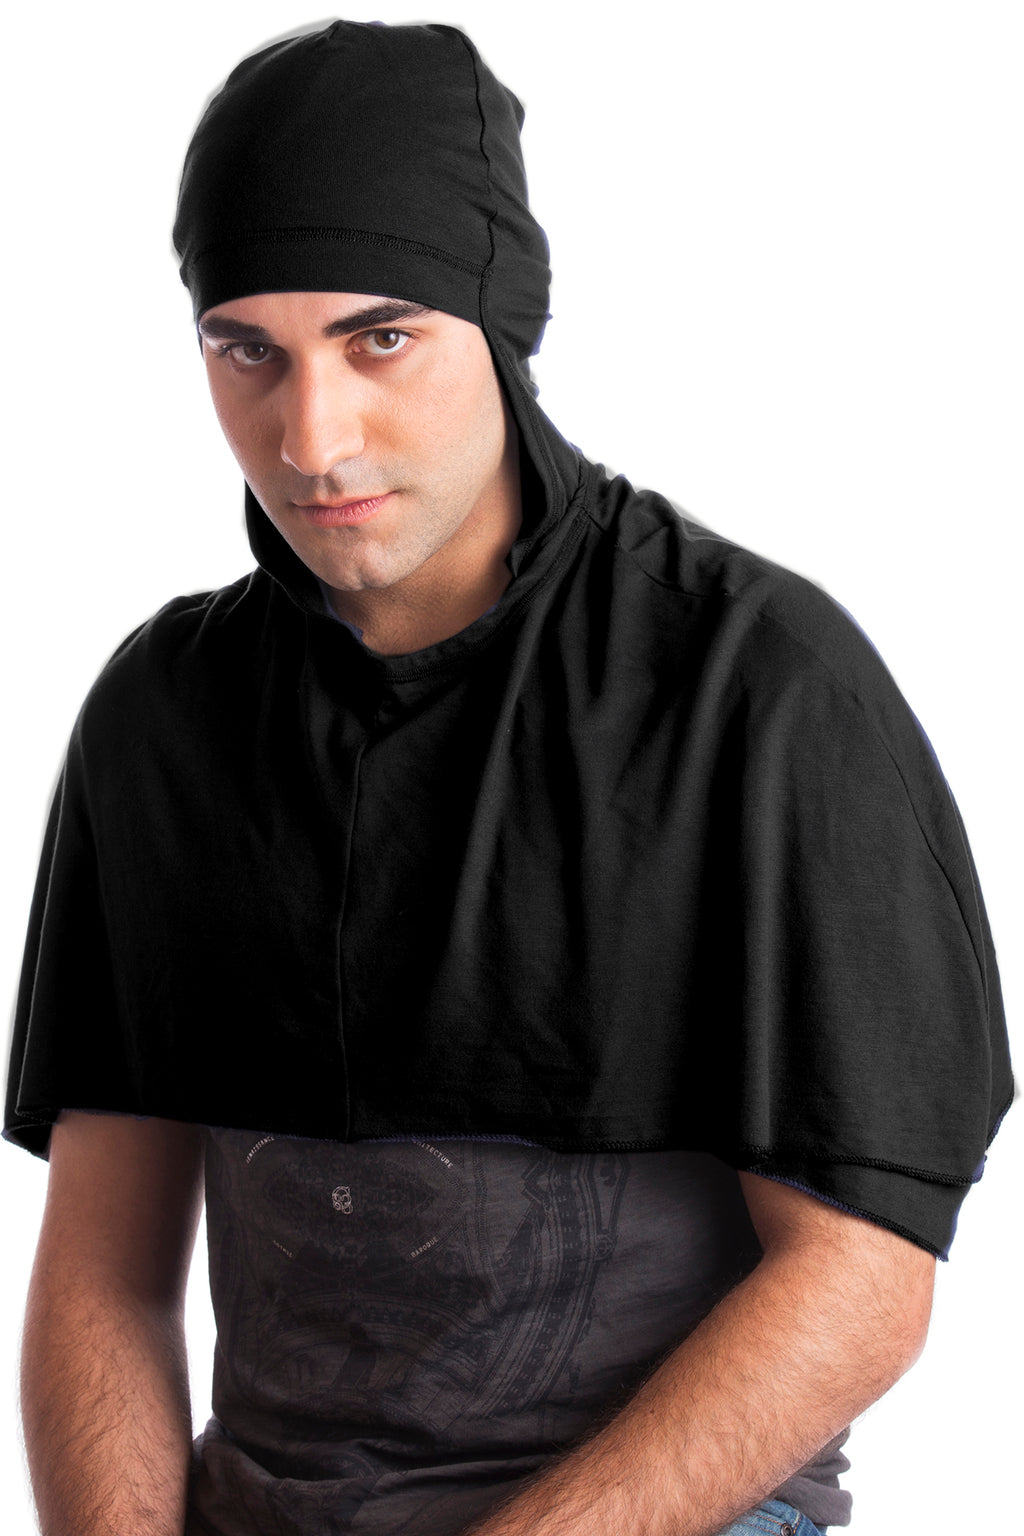 Hooded Cotton Cape Poncho for Men - Black